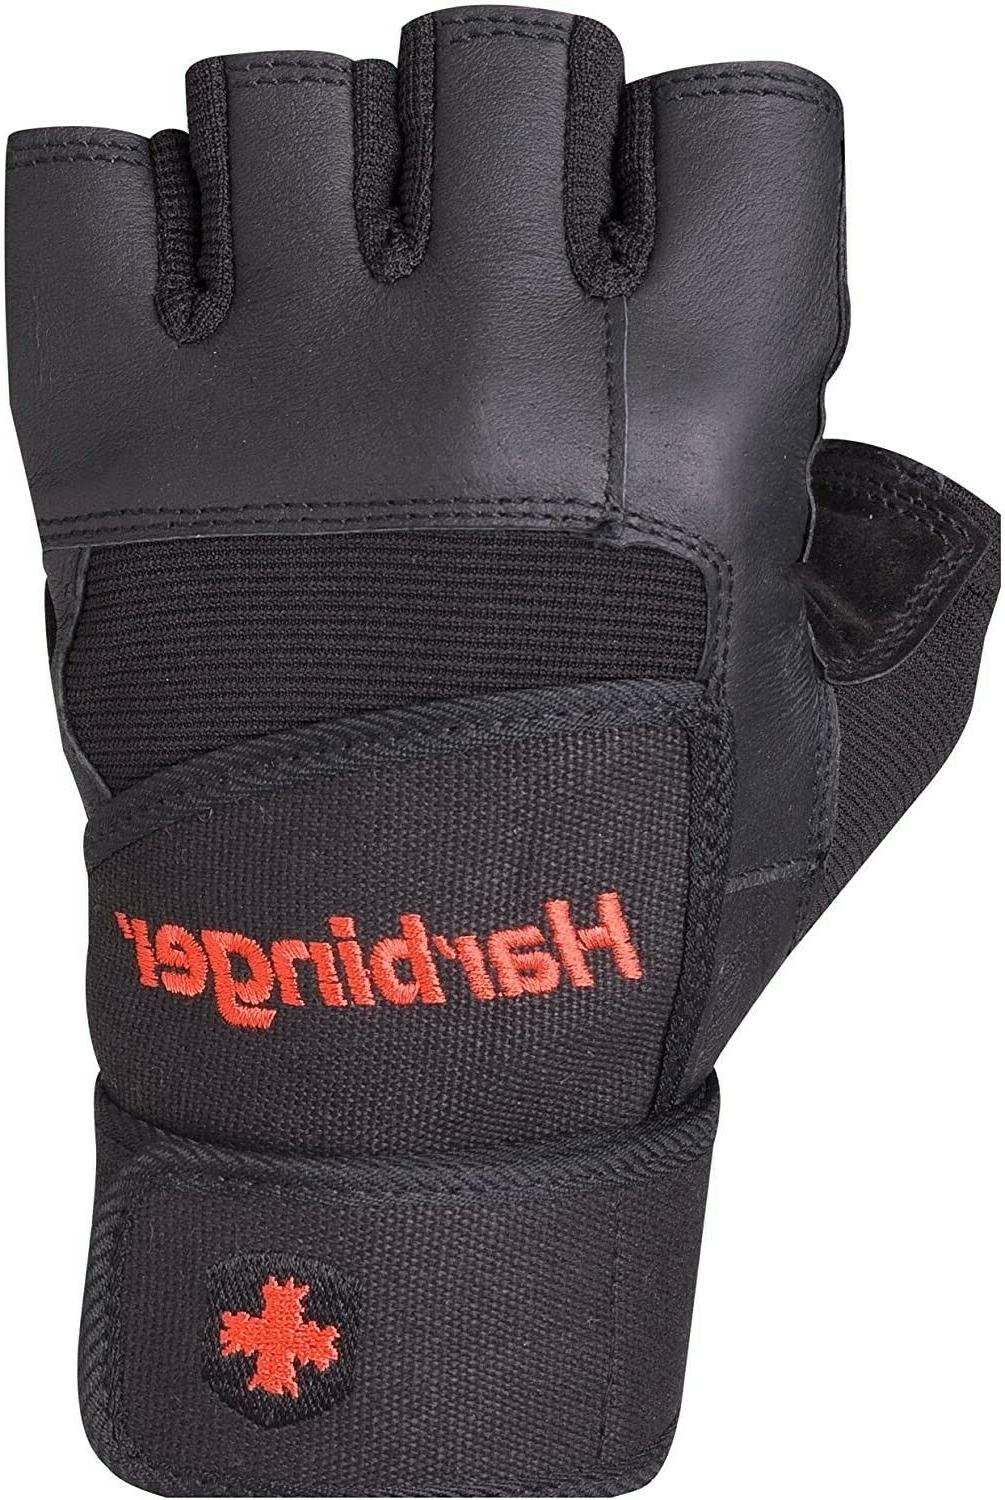 Harbinger Pro Gloves Cushioned Palm  M